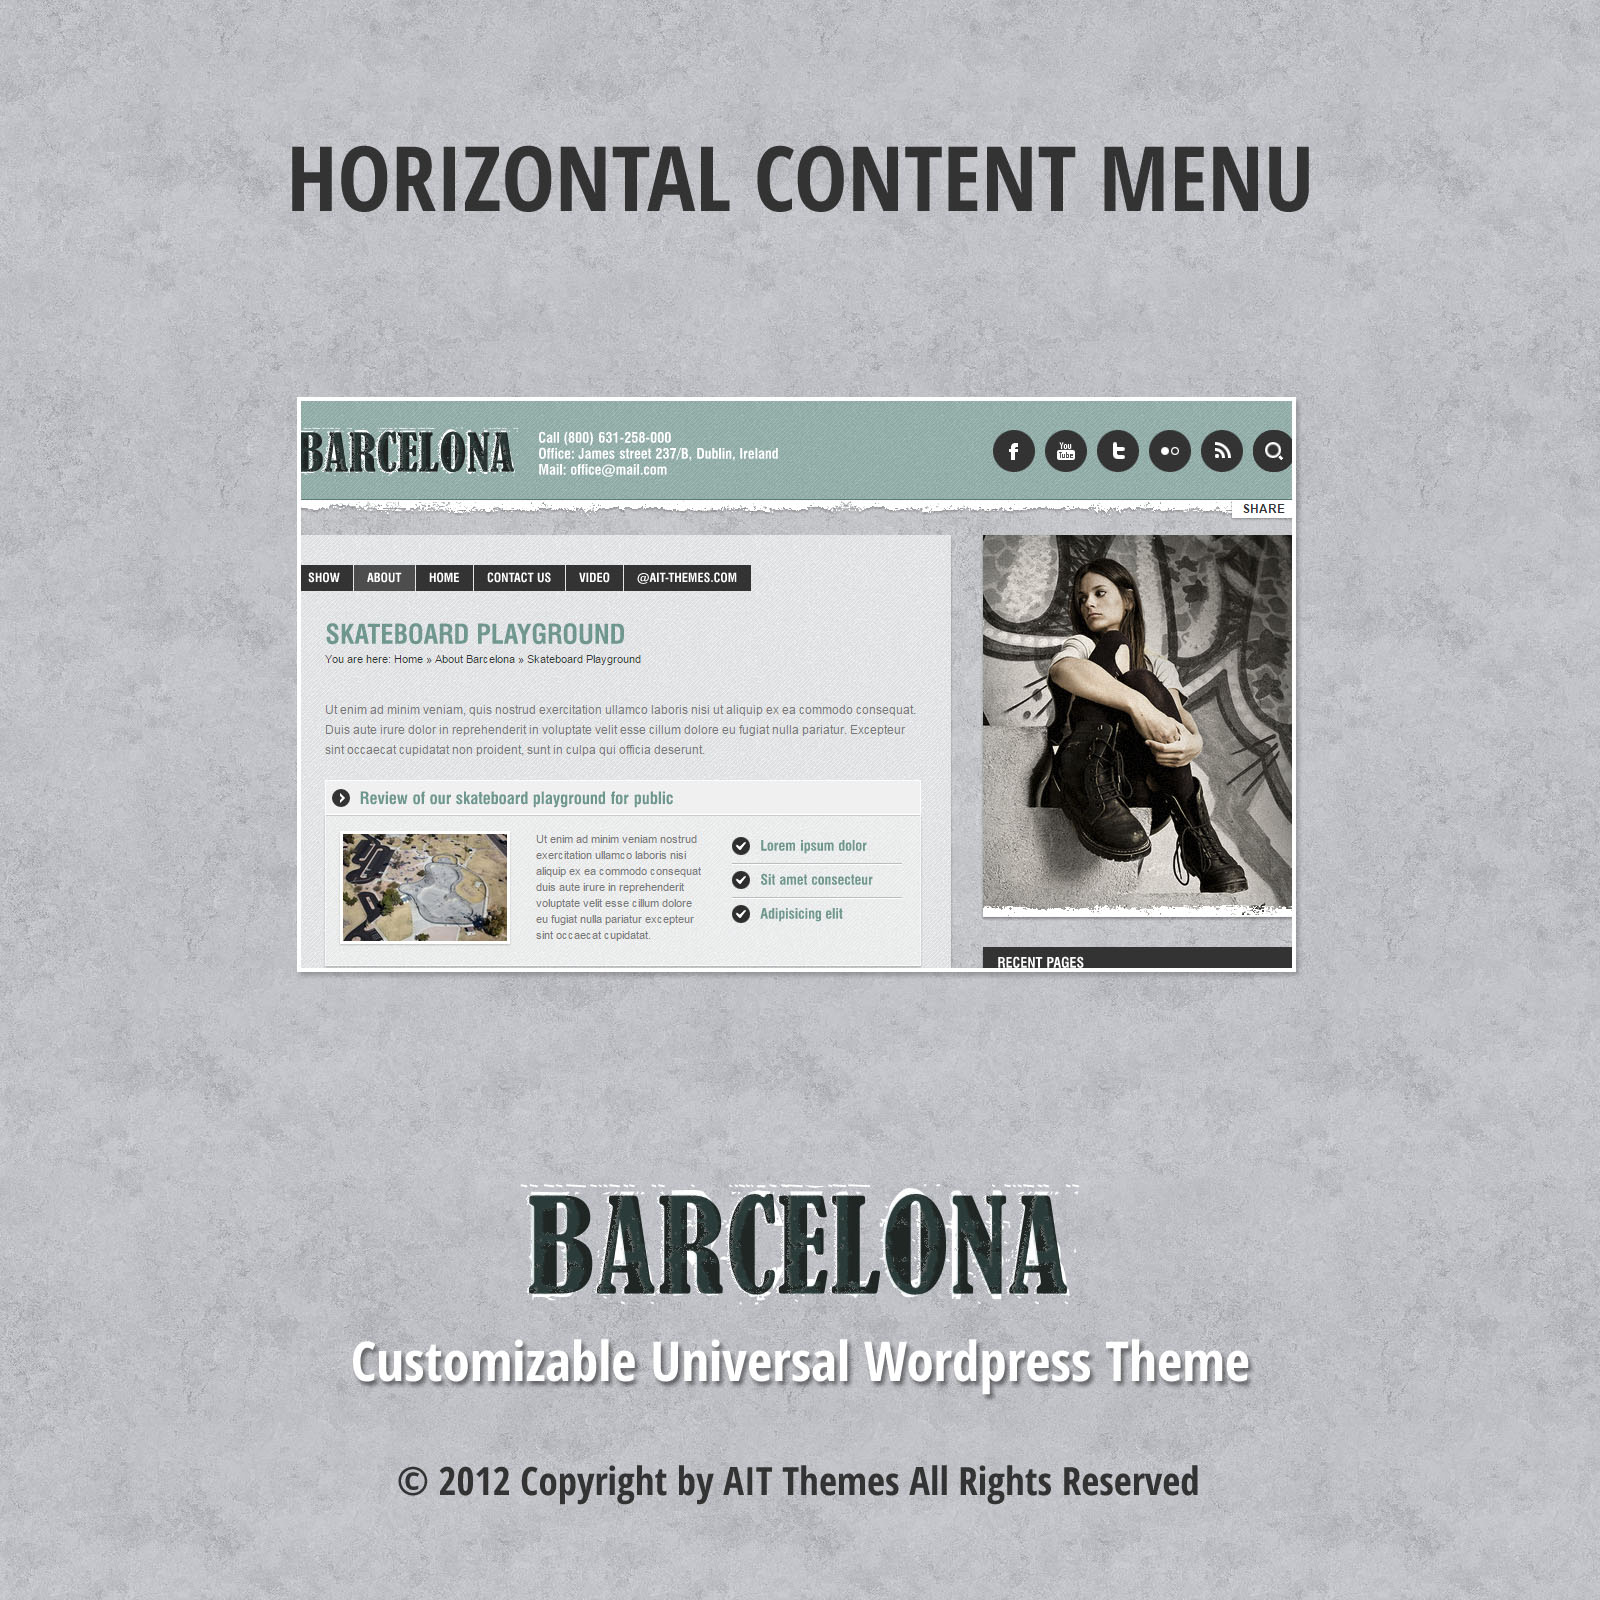 Horizontal Content Menu